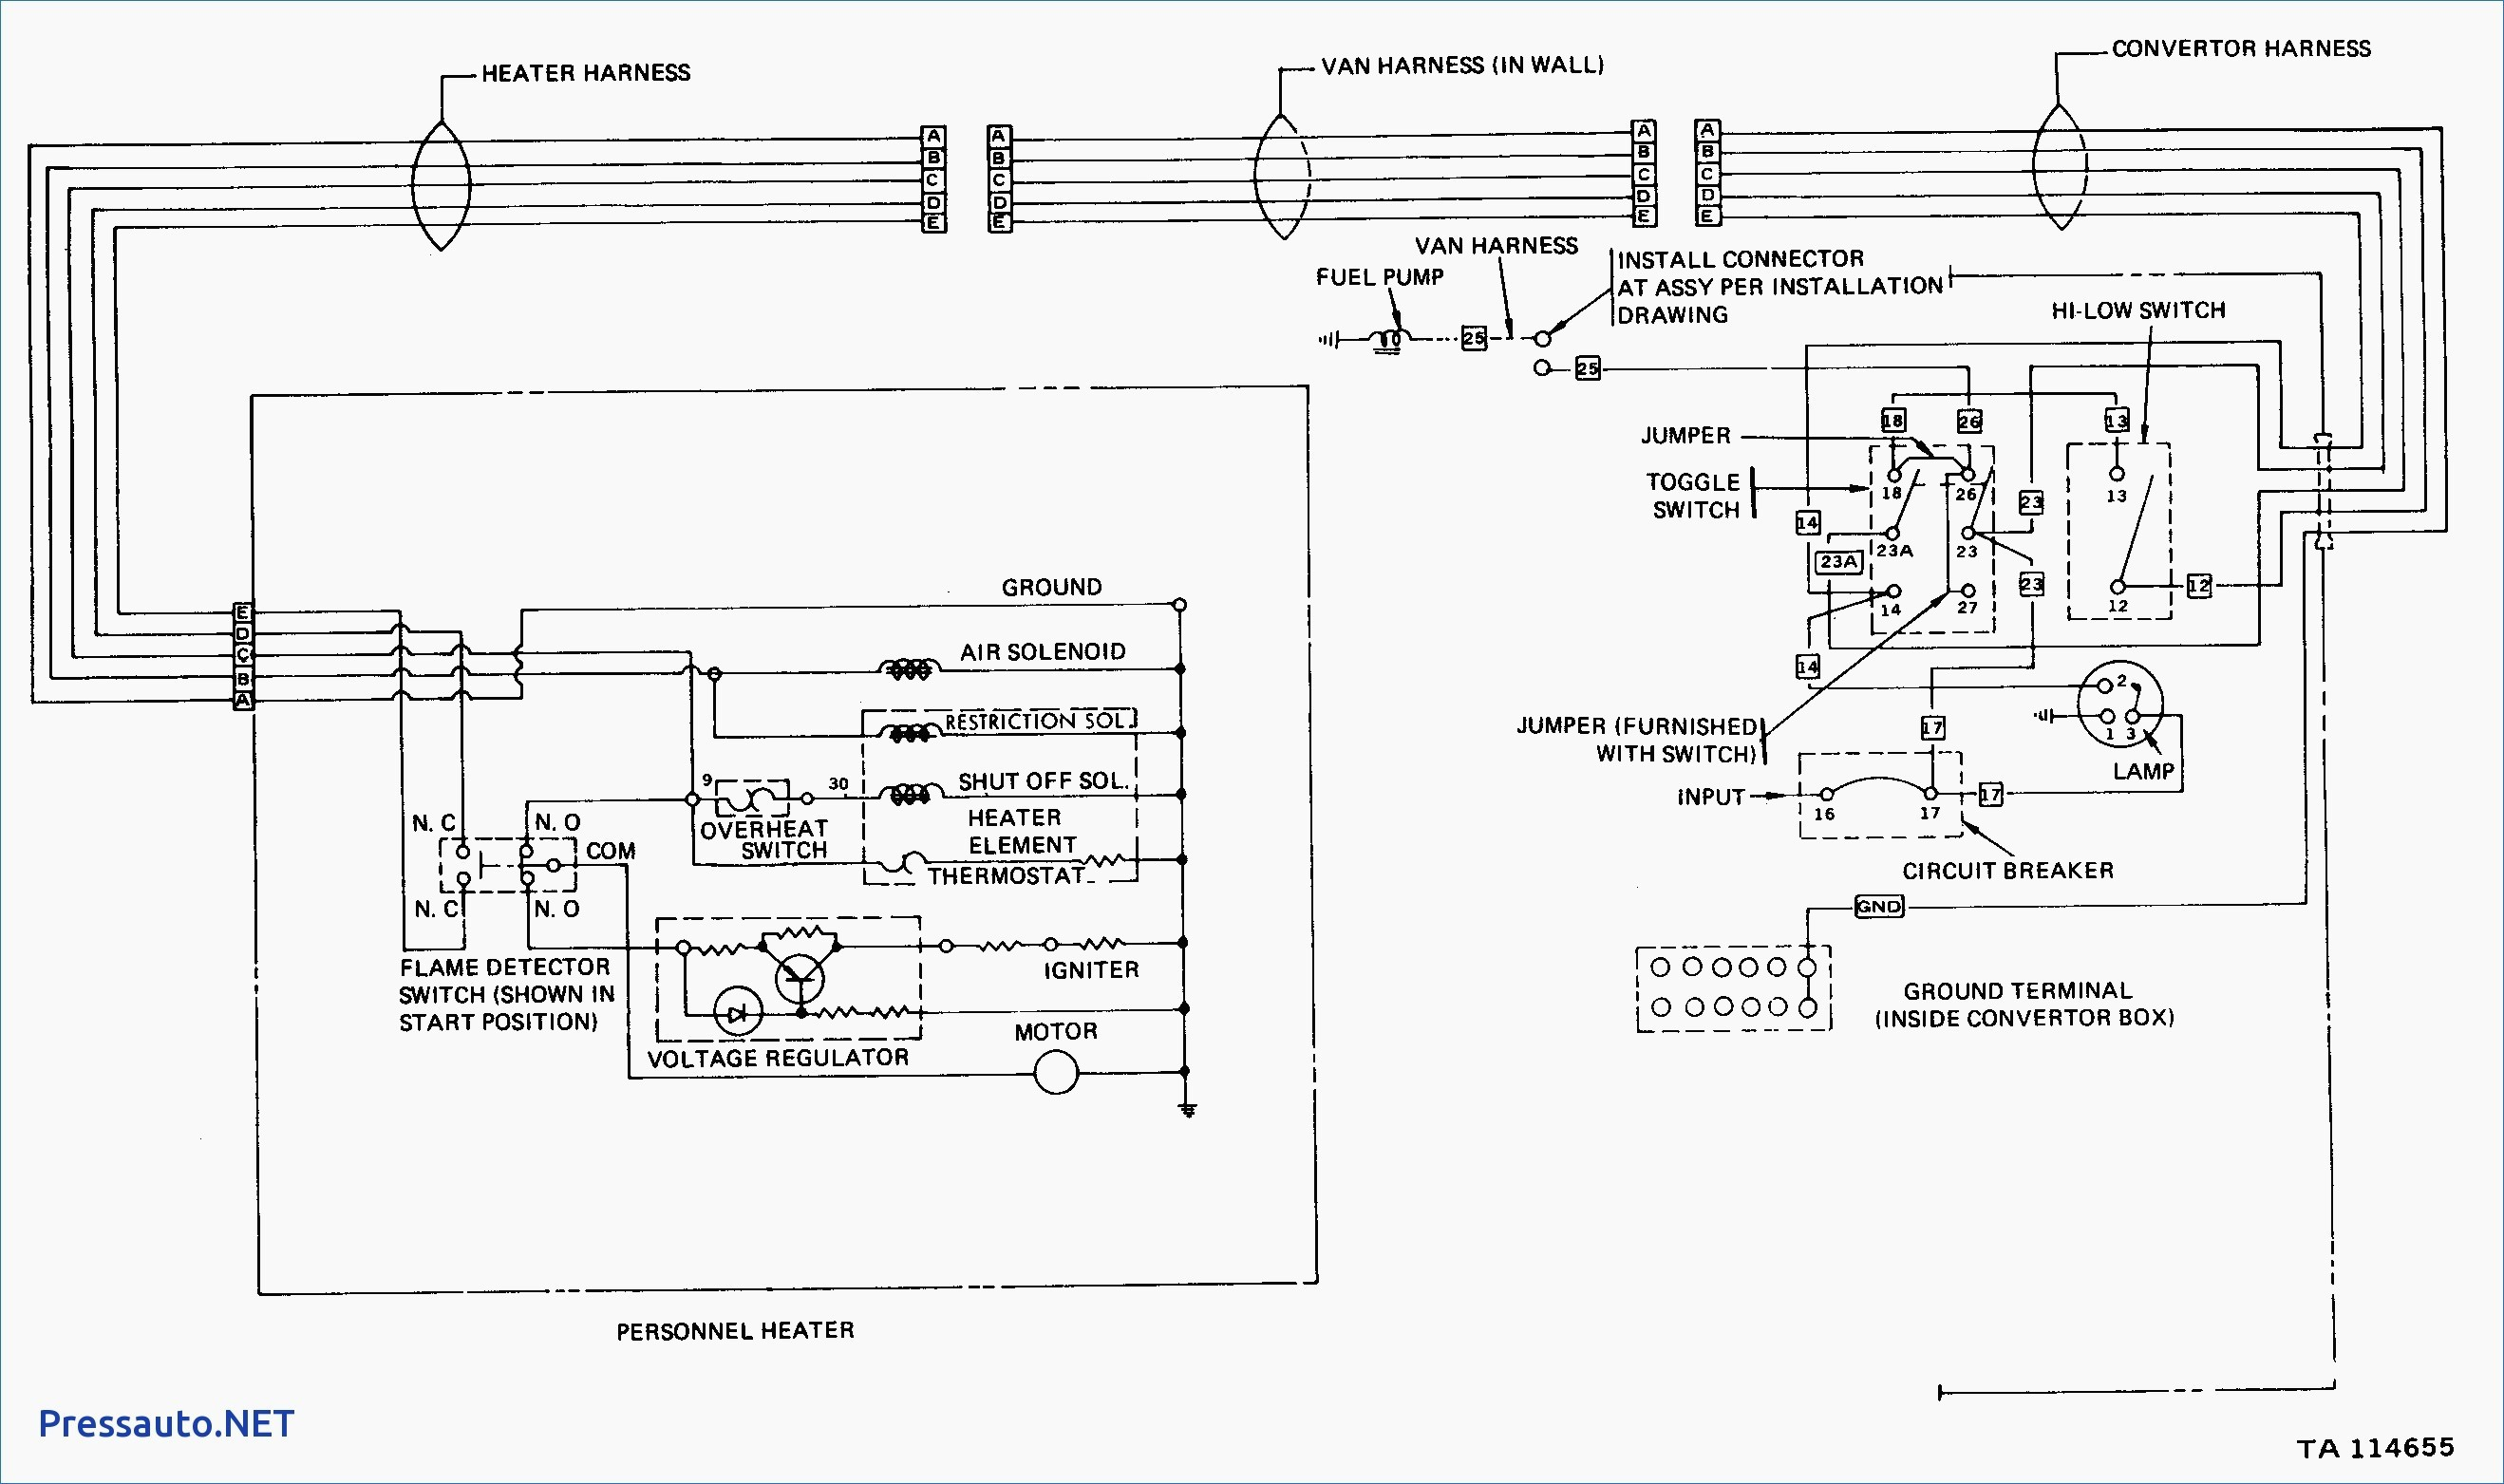 Bulldog Security Wiring Diagram Bulldog Security Bd New Vehicle Wiring Diagrams New Bulldog Wiring Of Bulldog Security Wiring Diagram